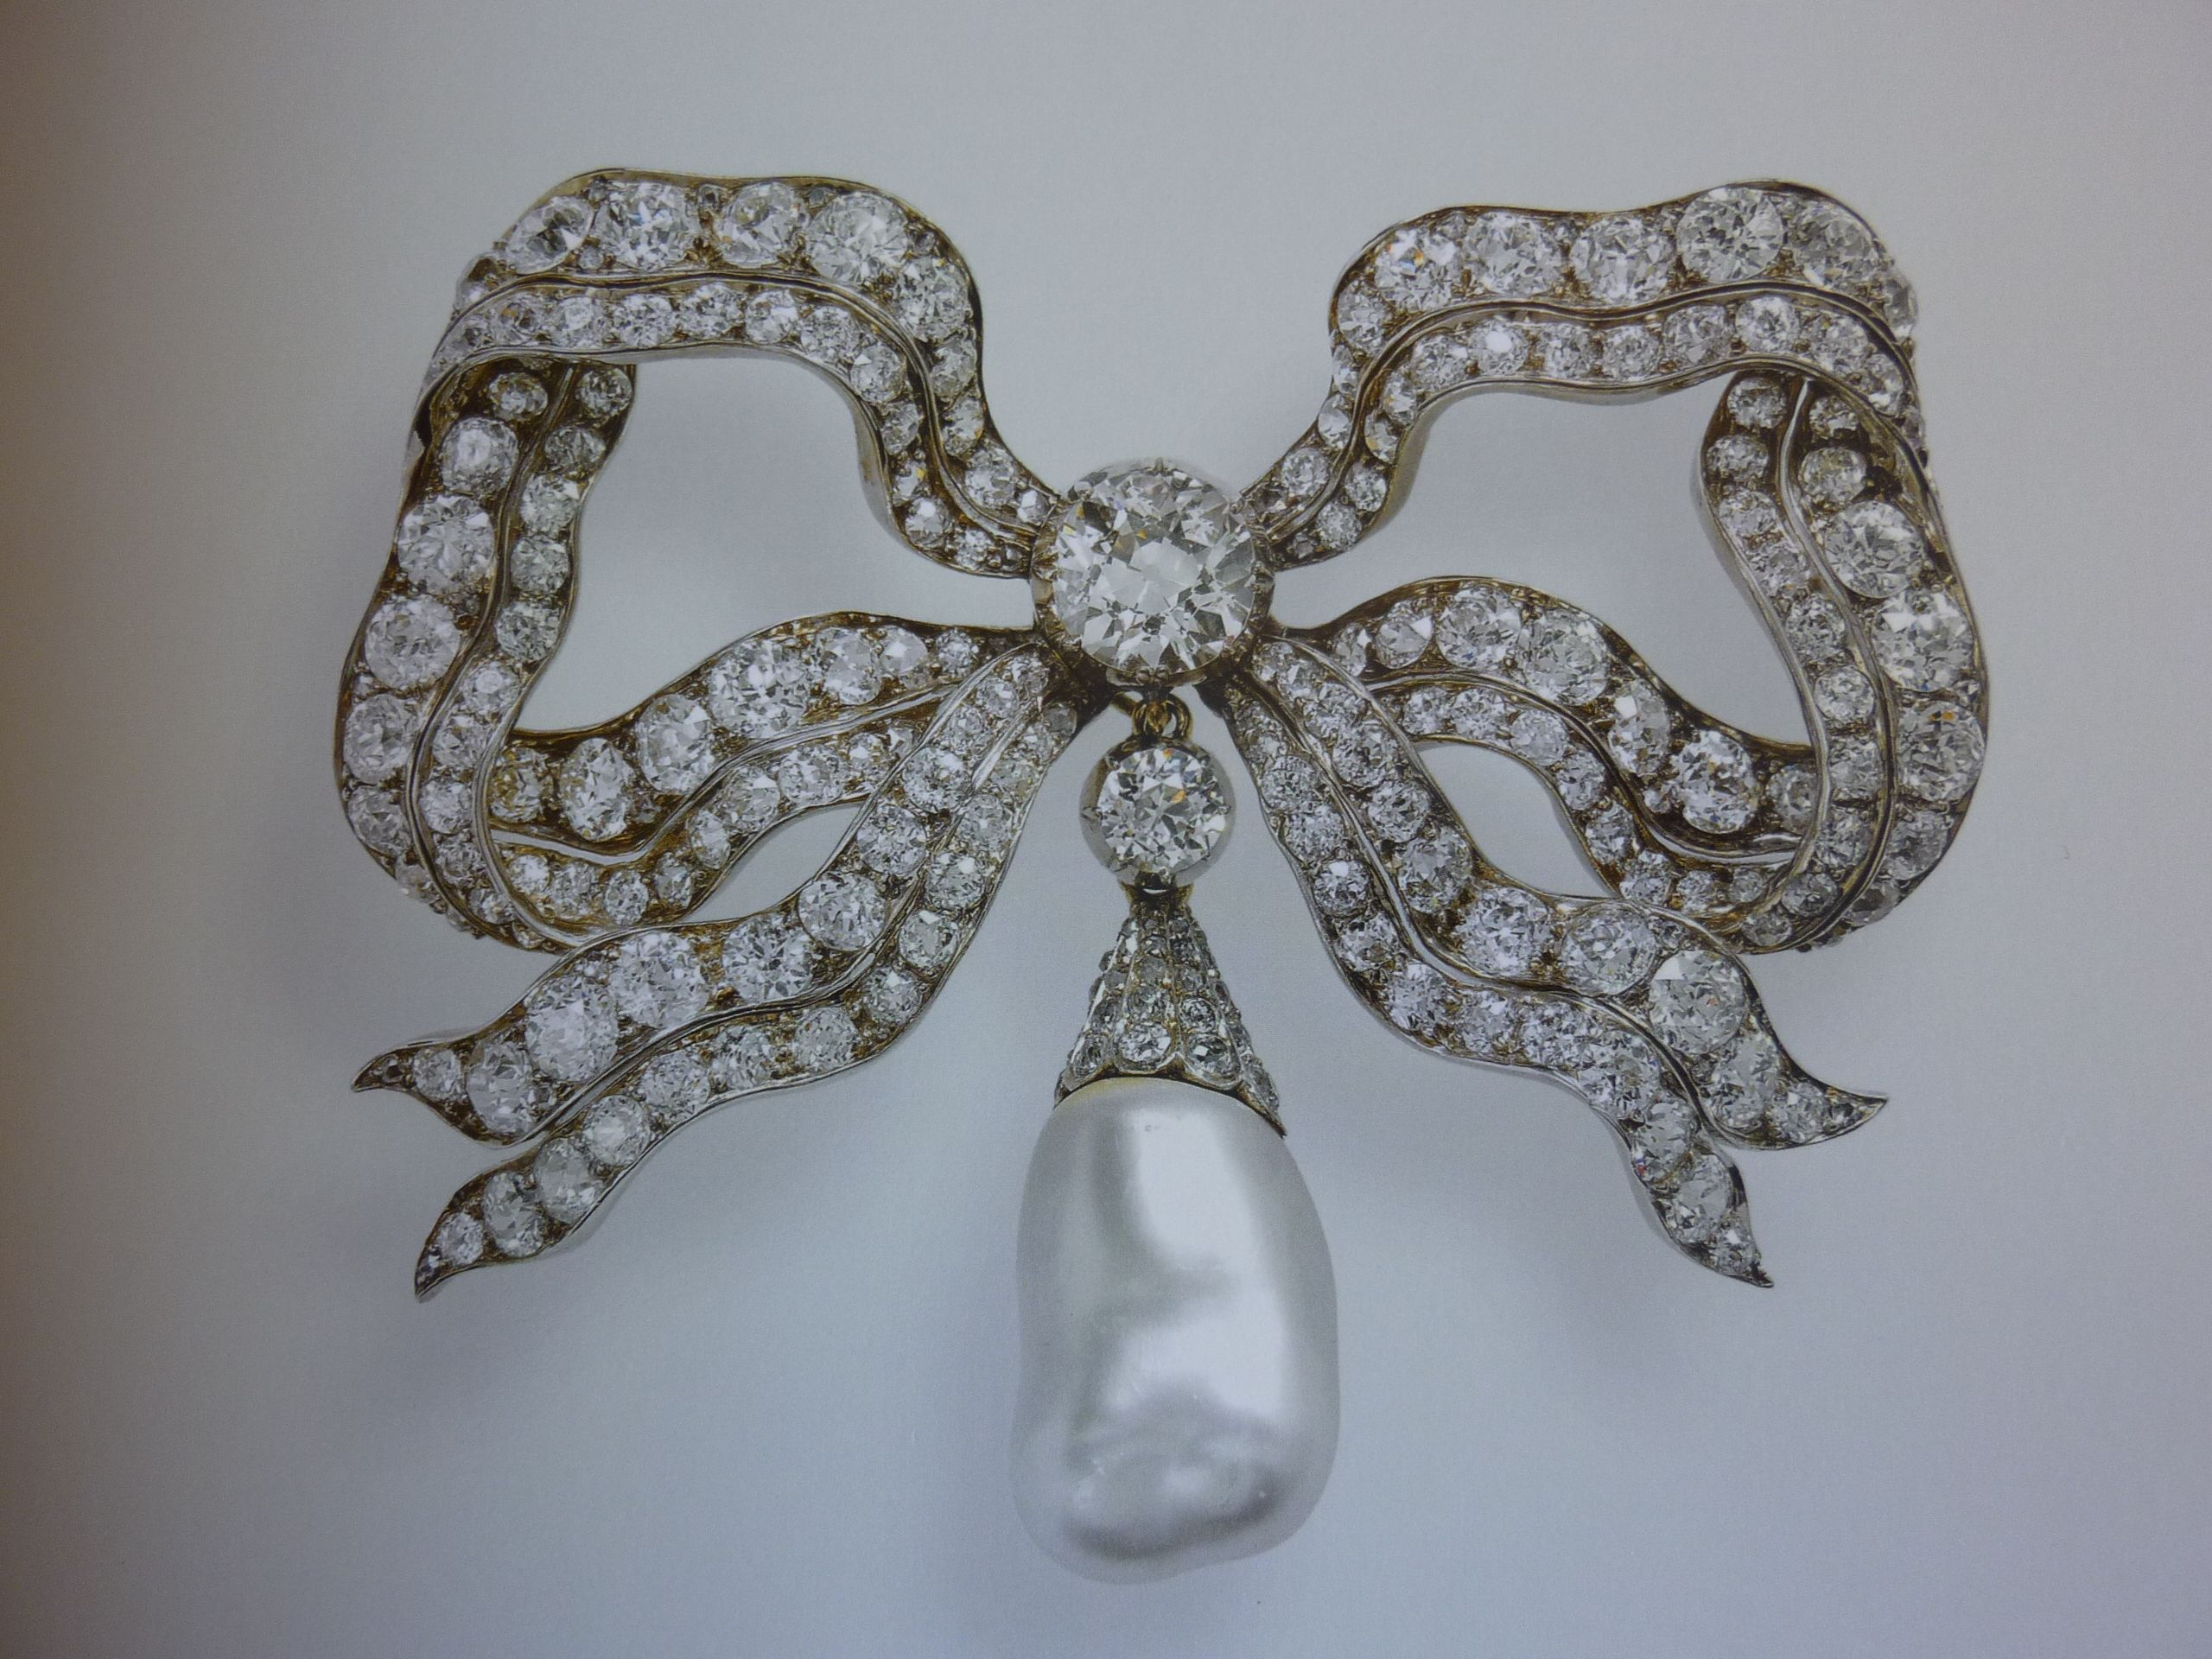 The Kensington Bow brooch: One of the Queen`s most used brooches, it is quite large so is more often used for formal events or Rememberance services. The Queen chose to wear this brooch to her mother`s funeral. It is a large diamond bow with an oriental pearl pendant. The Bow can be worn without the pendant. Queen Mary wore the brooch until she left it to the Queen in 1953.